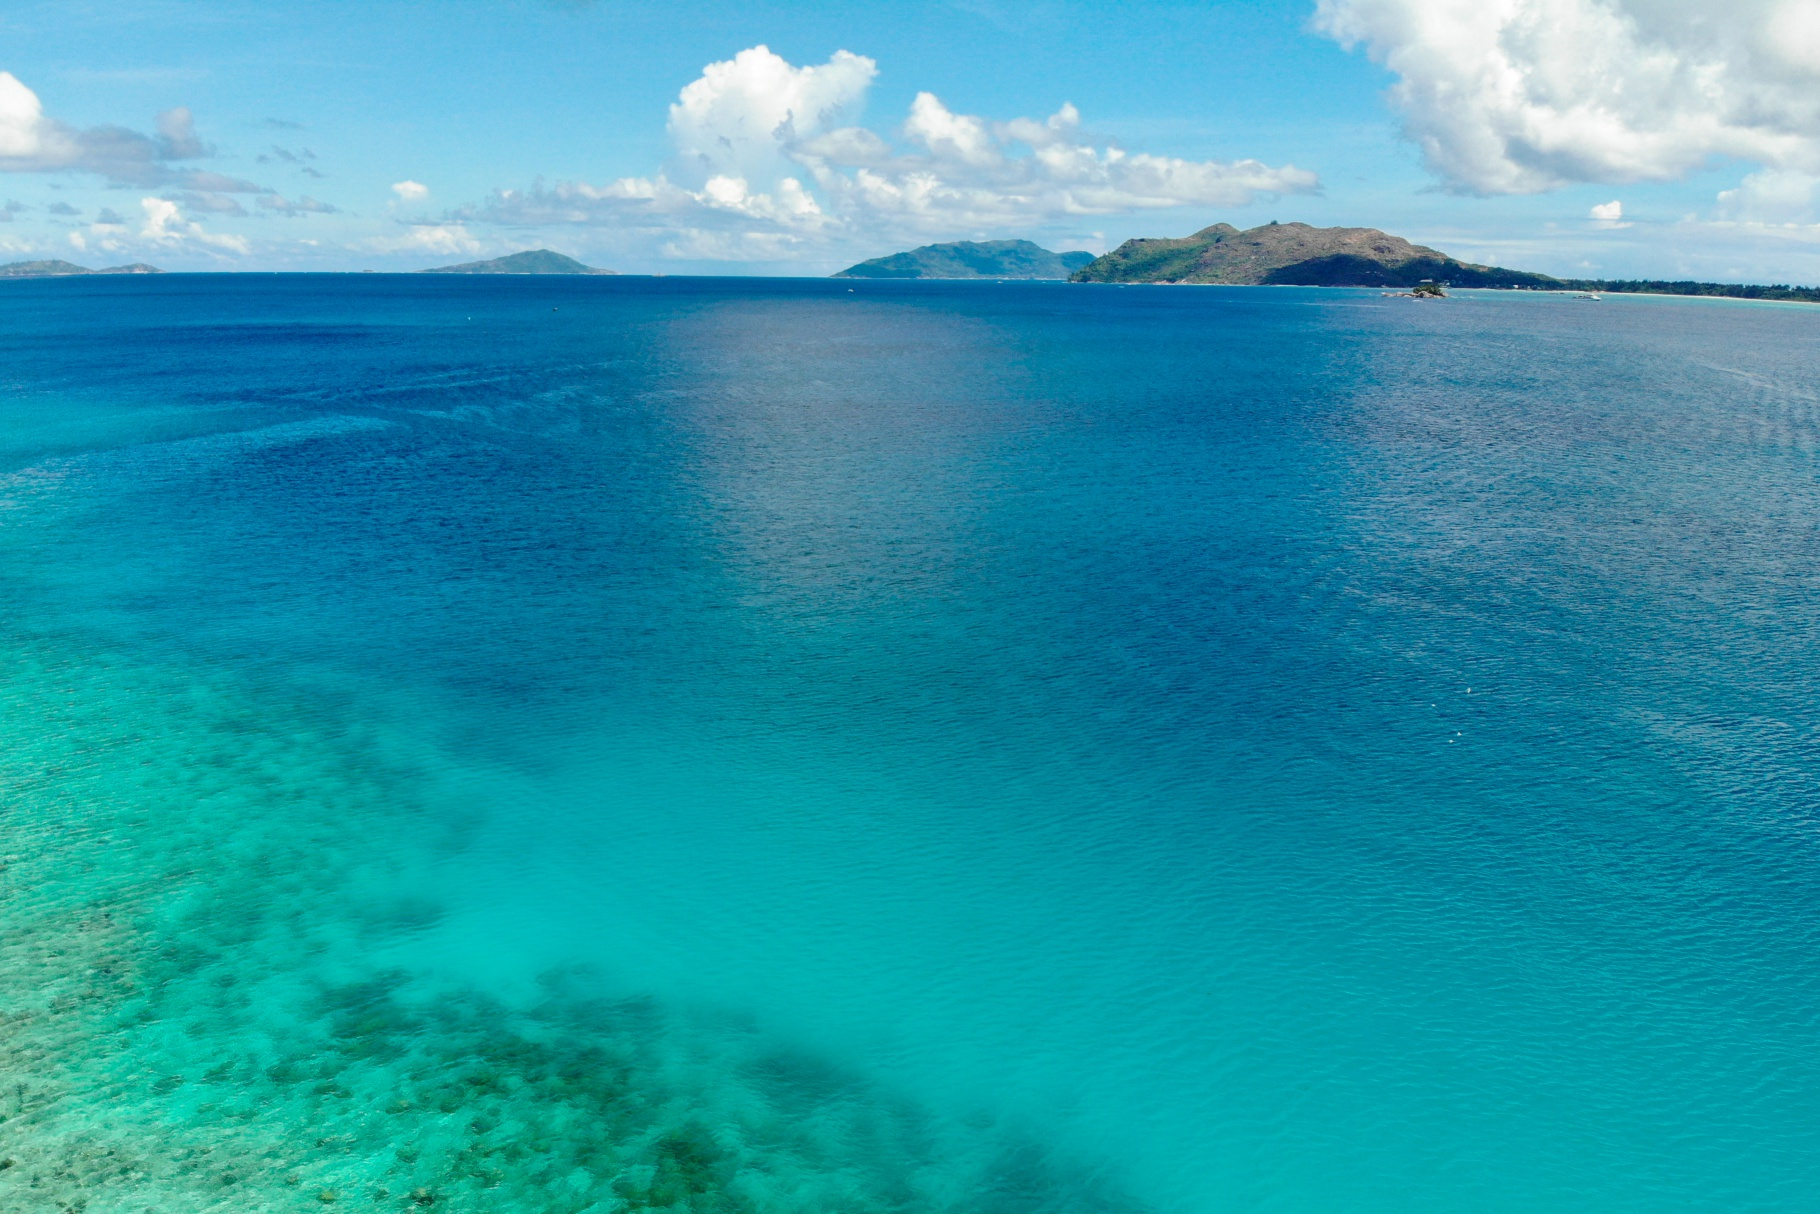 Reef scientists adapt ideas from investment world to assist coral reef conservation